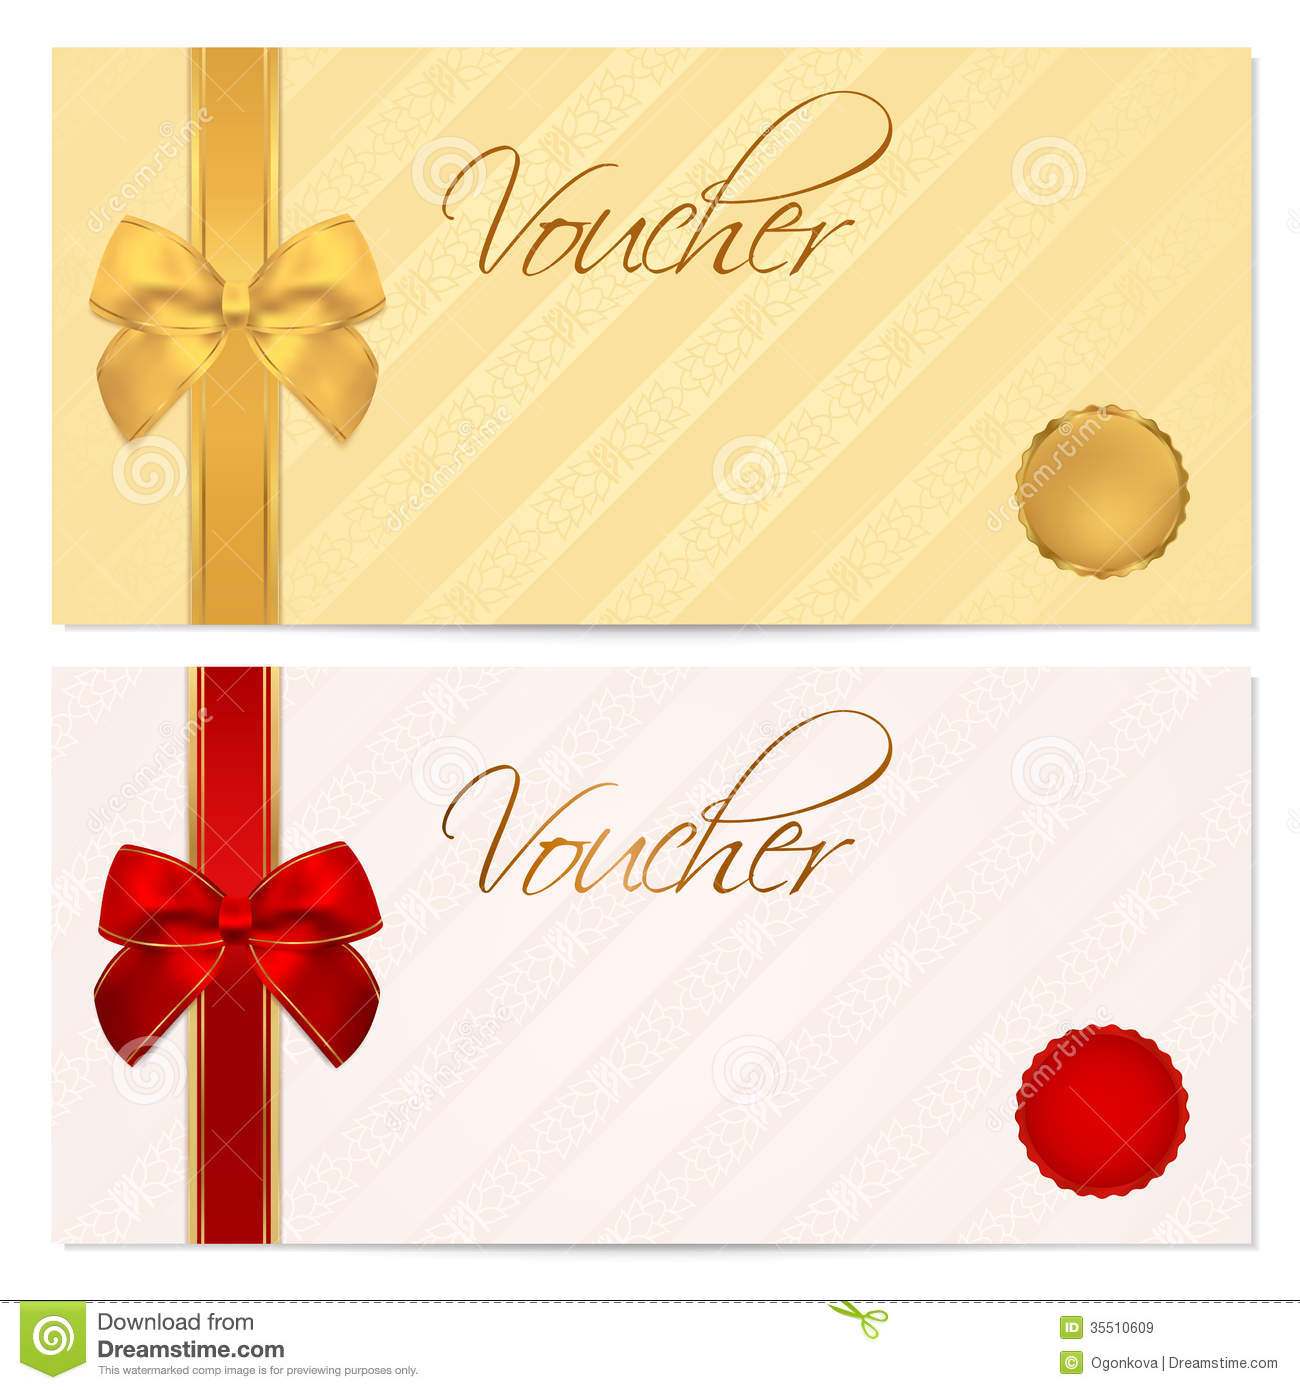 Gift Voucher Template Free Download Voucher Gift Certificate Coupon Templatebow Stock Vector .